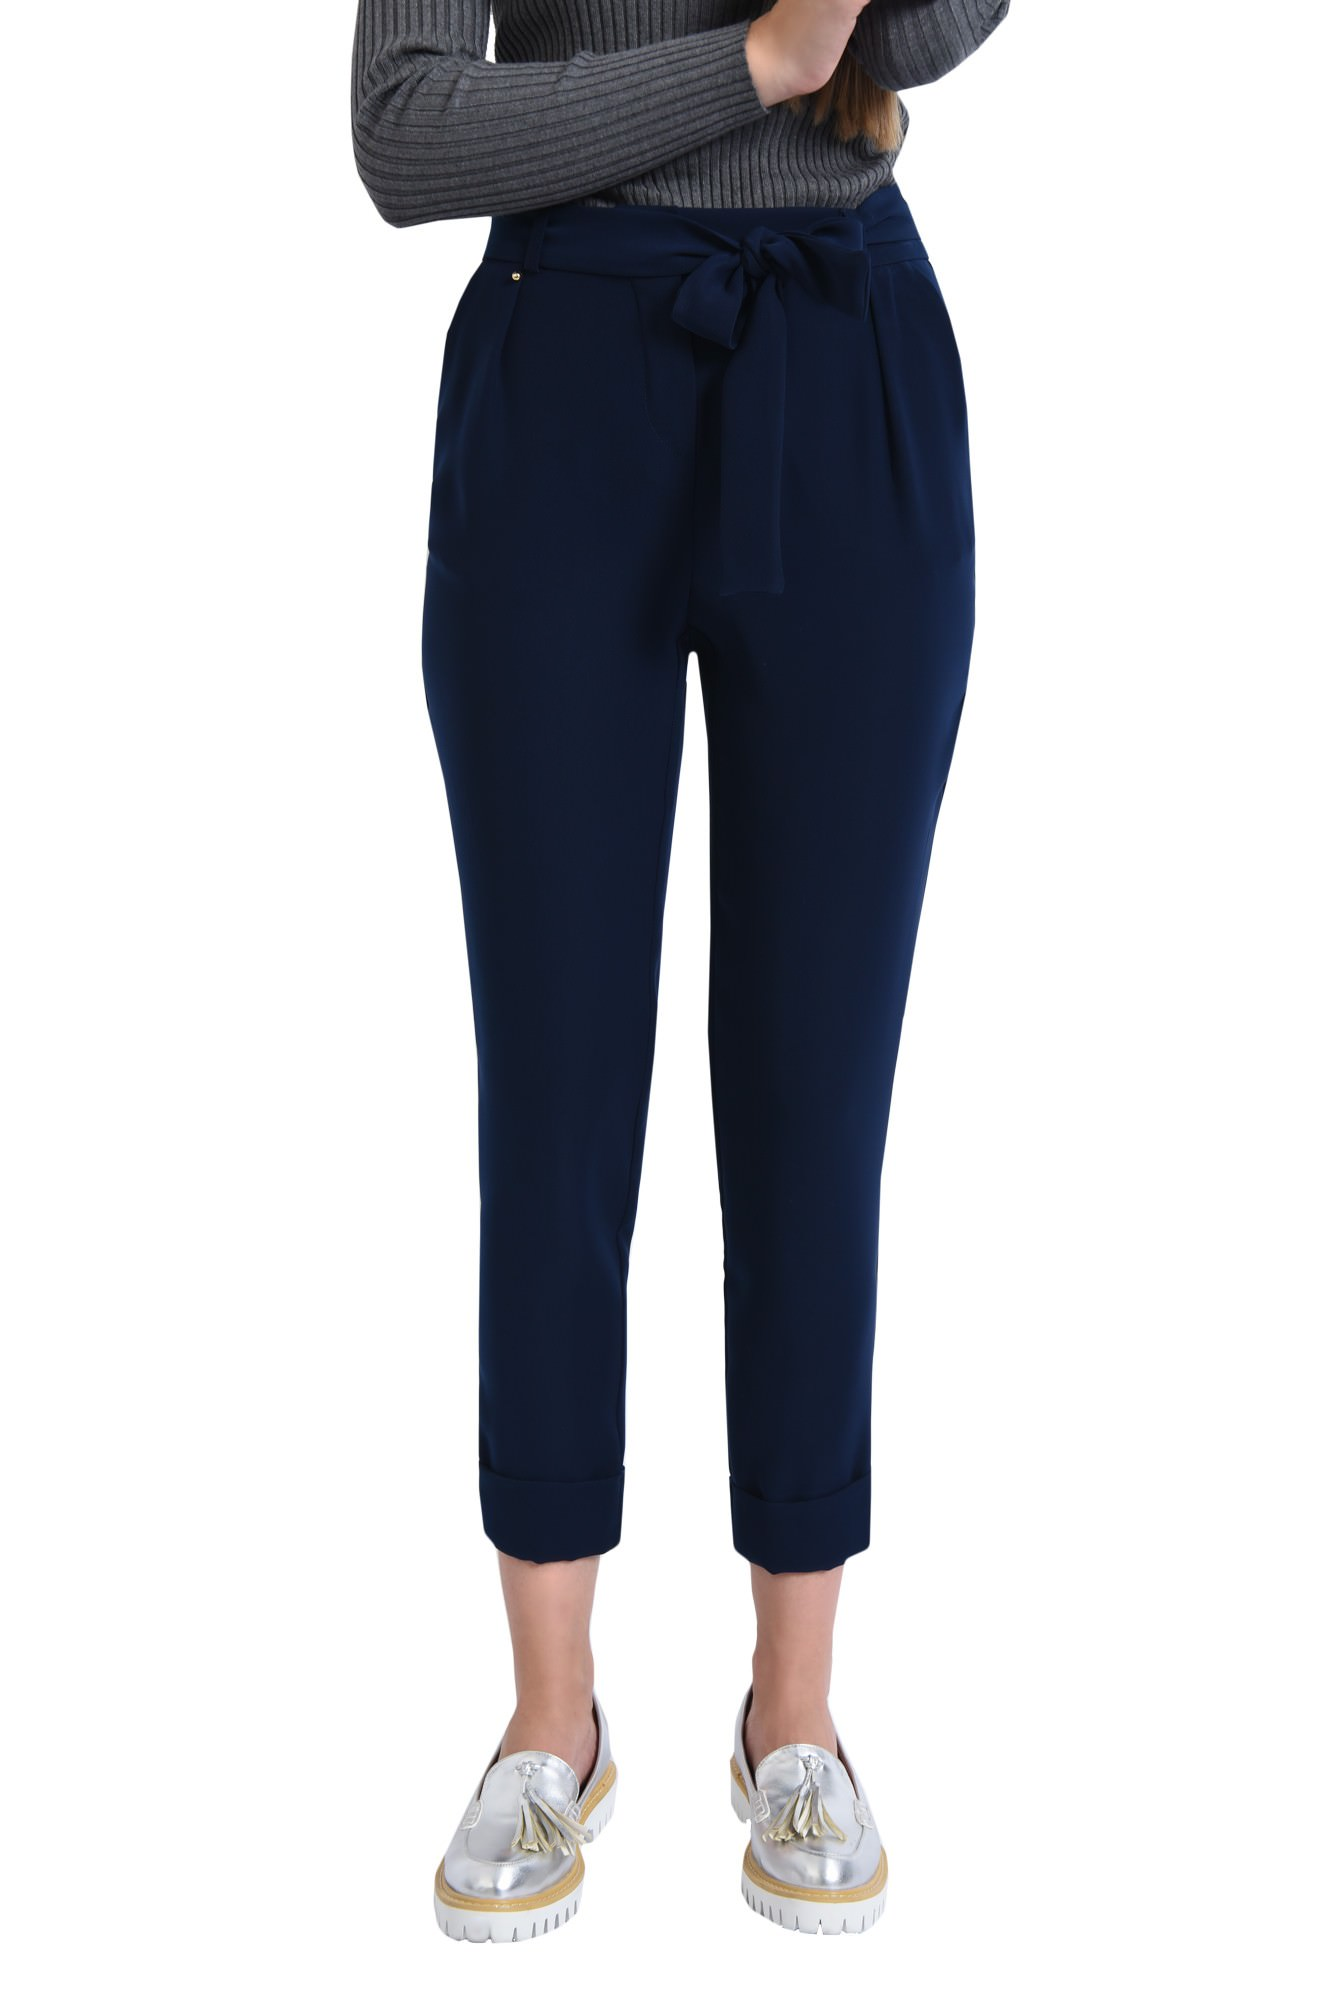 2 - PANTALON OFFICE PT 172-BLEUMARIN